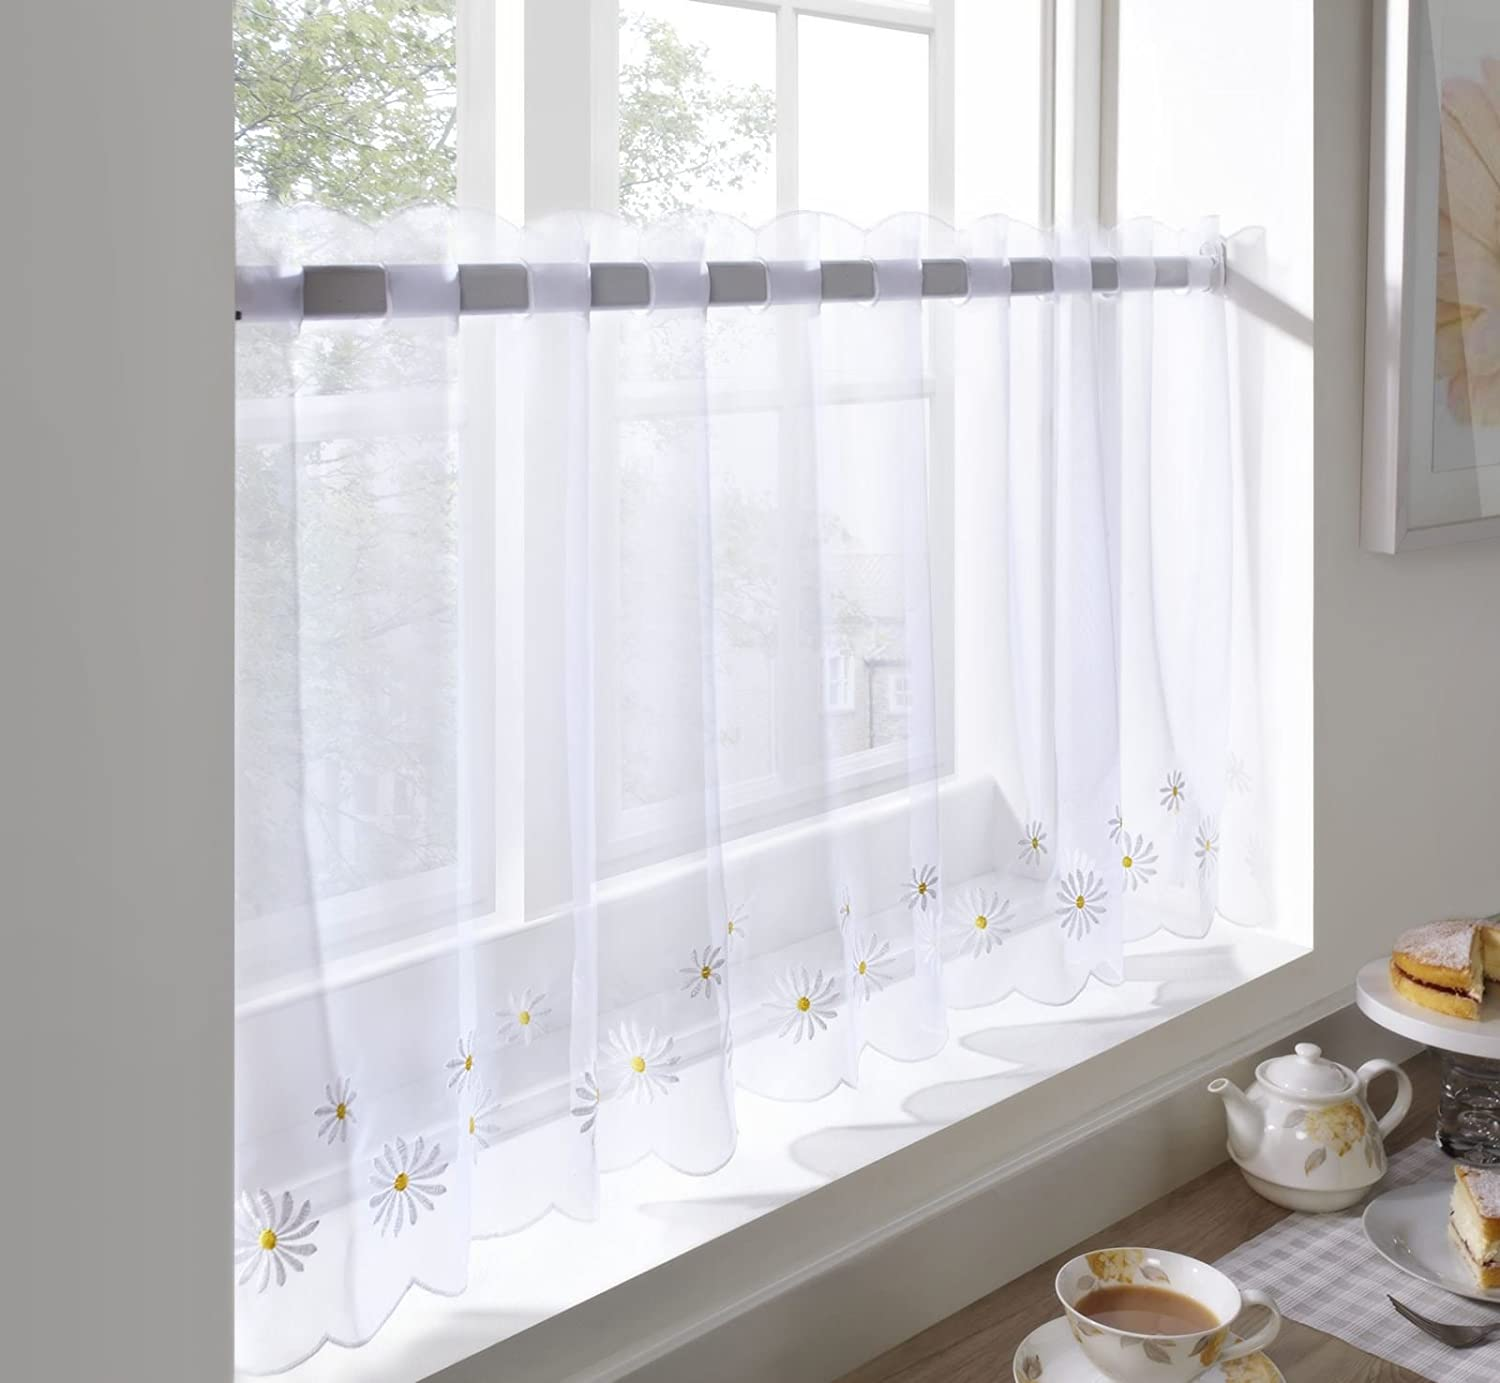 voile window wayfair tier collection kitchen treatments crushed ruffle curtains curtain elegant reviews pdx sweet home